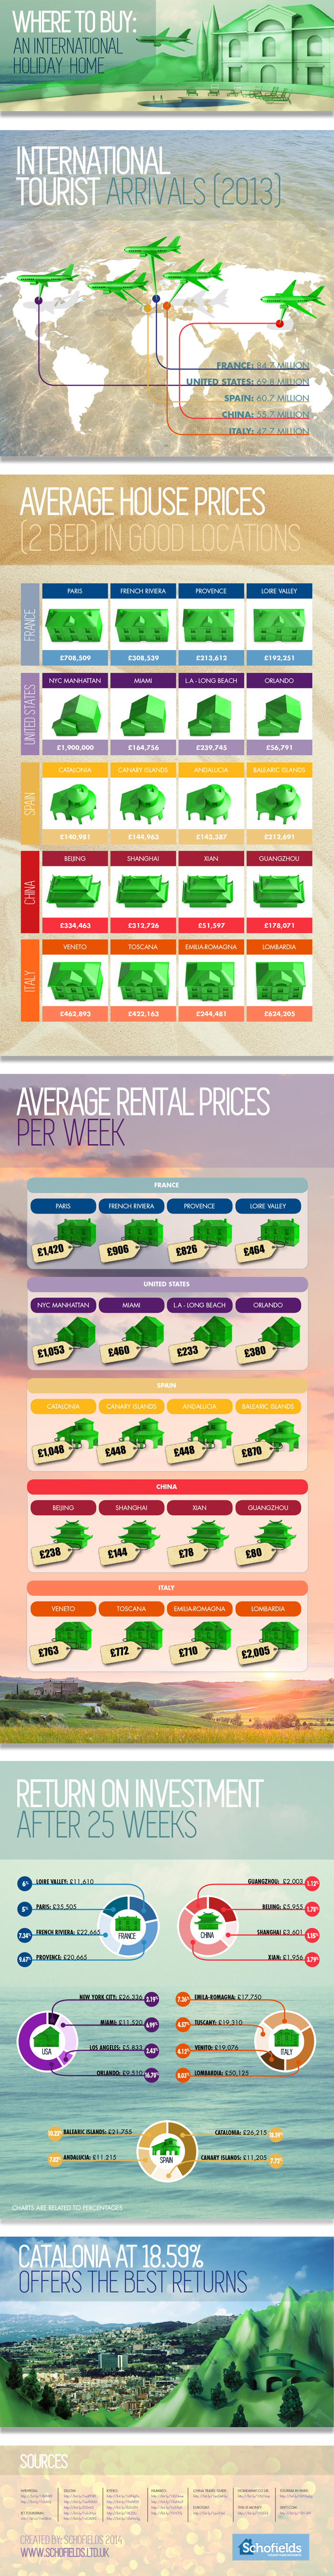 Guide To Buying A Holiday Home Infographic Travelphant